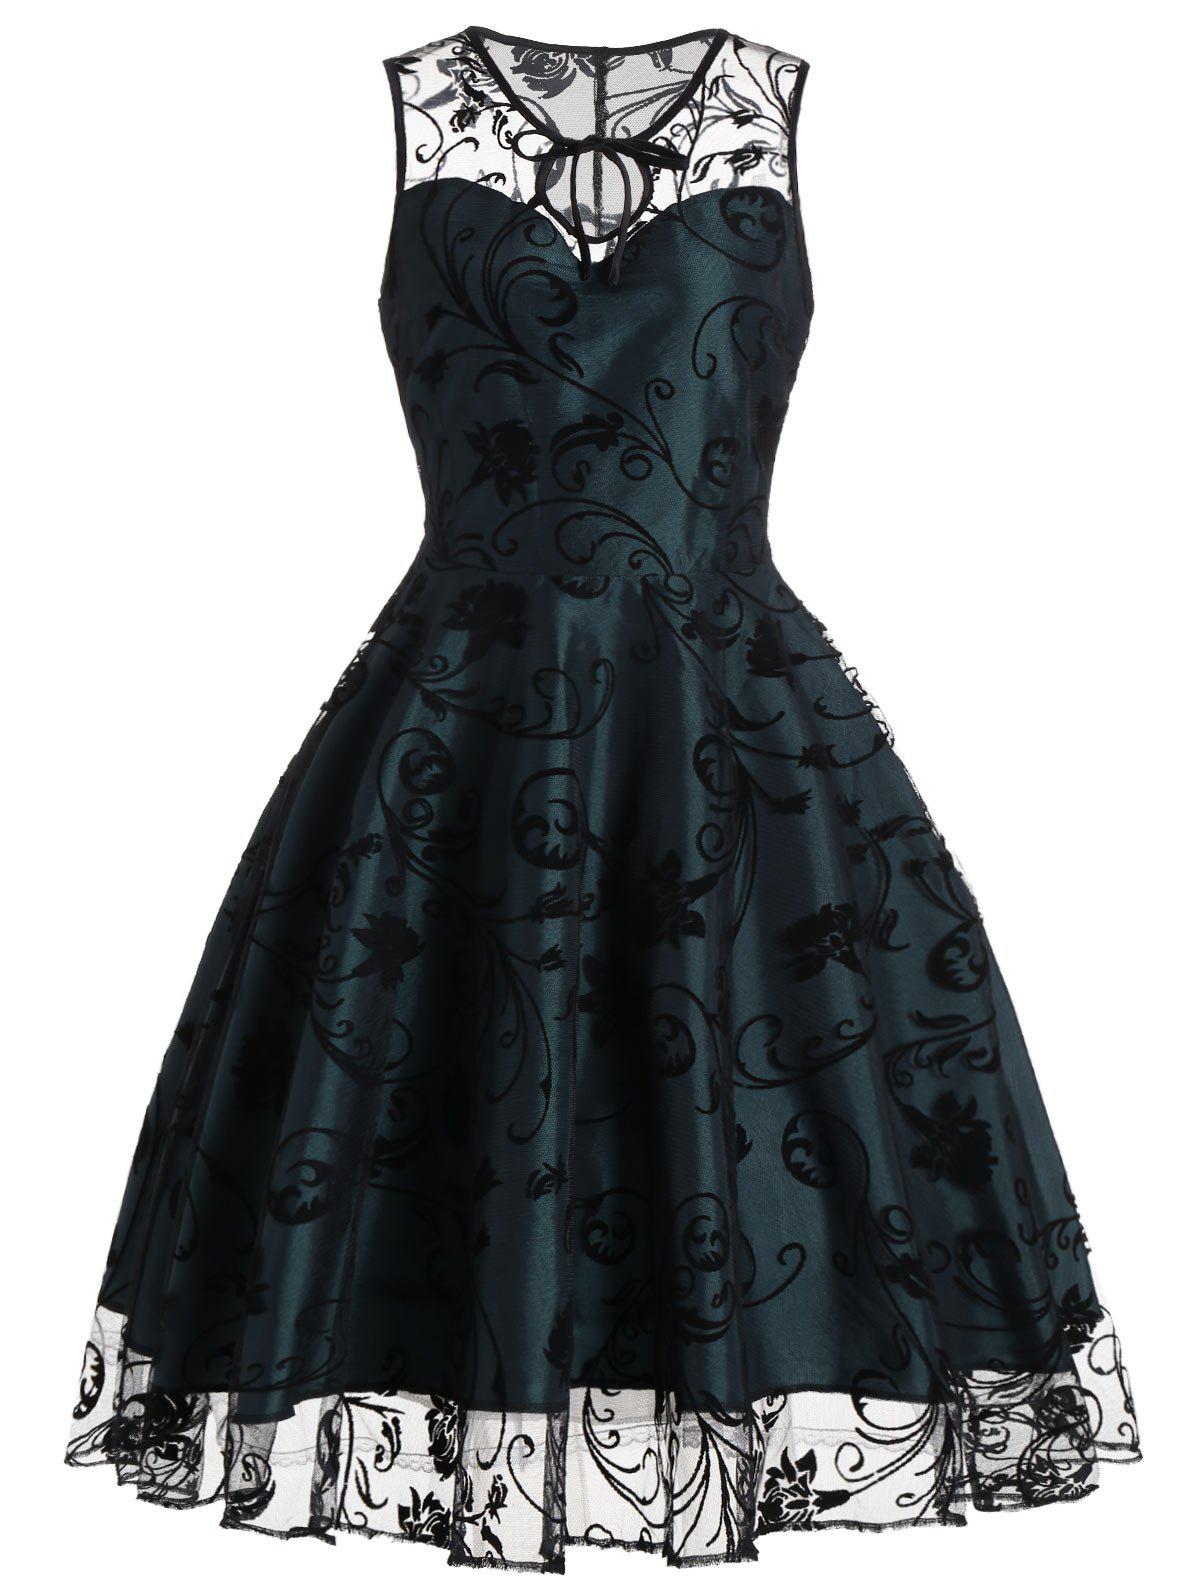 Tulle Floral Tea Length Vintage Party DressWOMEN<br><br>Size: 2XL; Color: BLACKISH GREEN; Style: Vintage; Material: Polyester; Silhouette: A-Line; Dresses Length: Mid-Calf; Neckline: Round Collar; Sleeve Length: Sleeveless; Pattern Type: Floral; With Belt: No; Season: Summer; Weight: 0.3700kg; Package Contents: 1 x Dress;